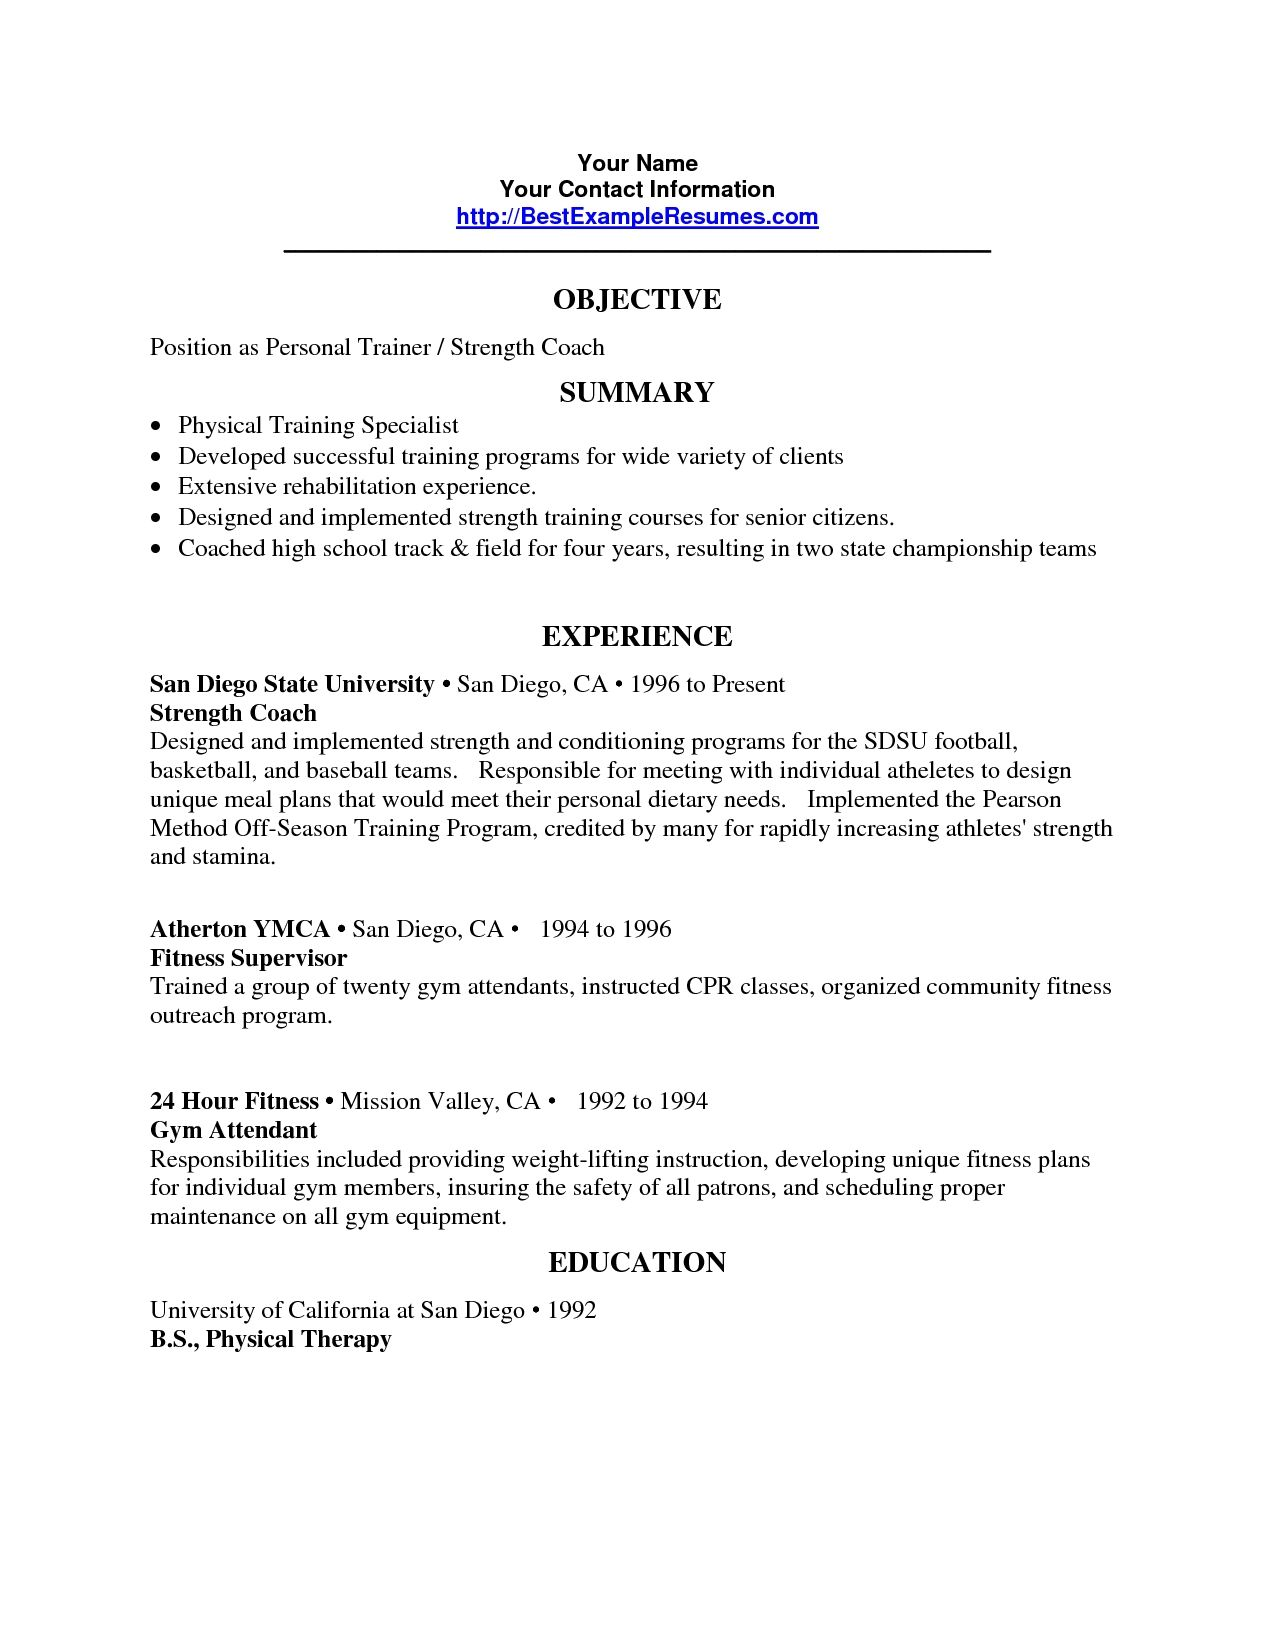 personal trainer resume objective sample gallery photos job samples for leasing Resume Resume Objective For Trainer